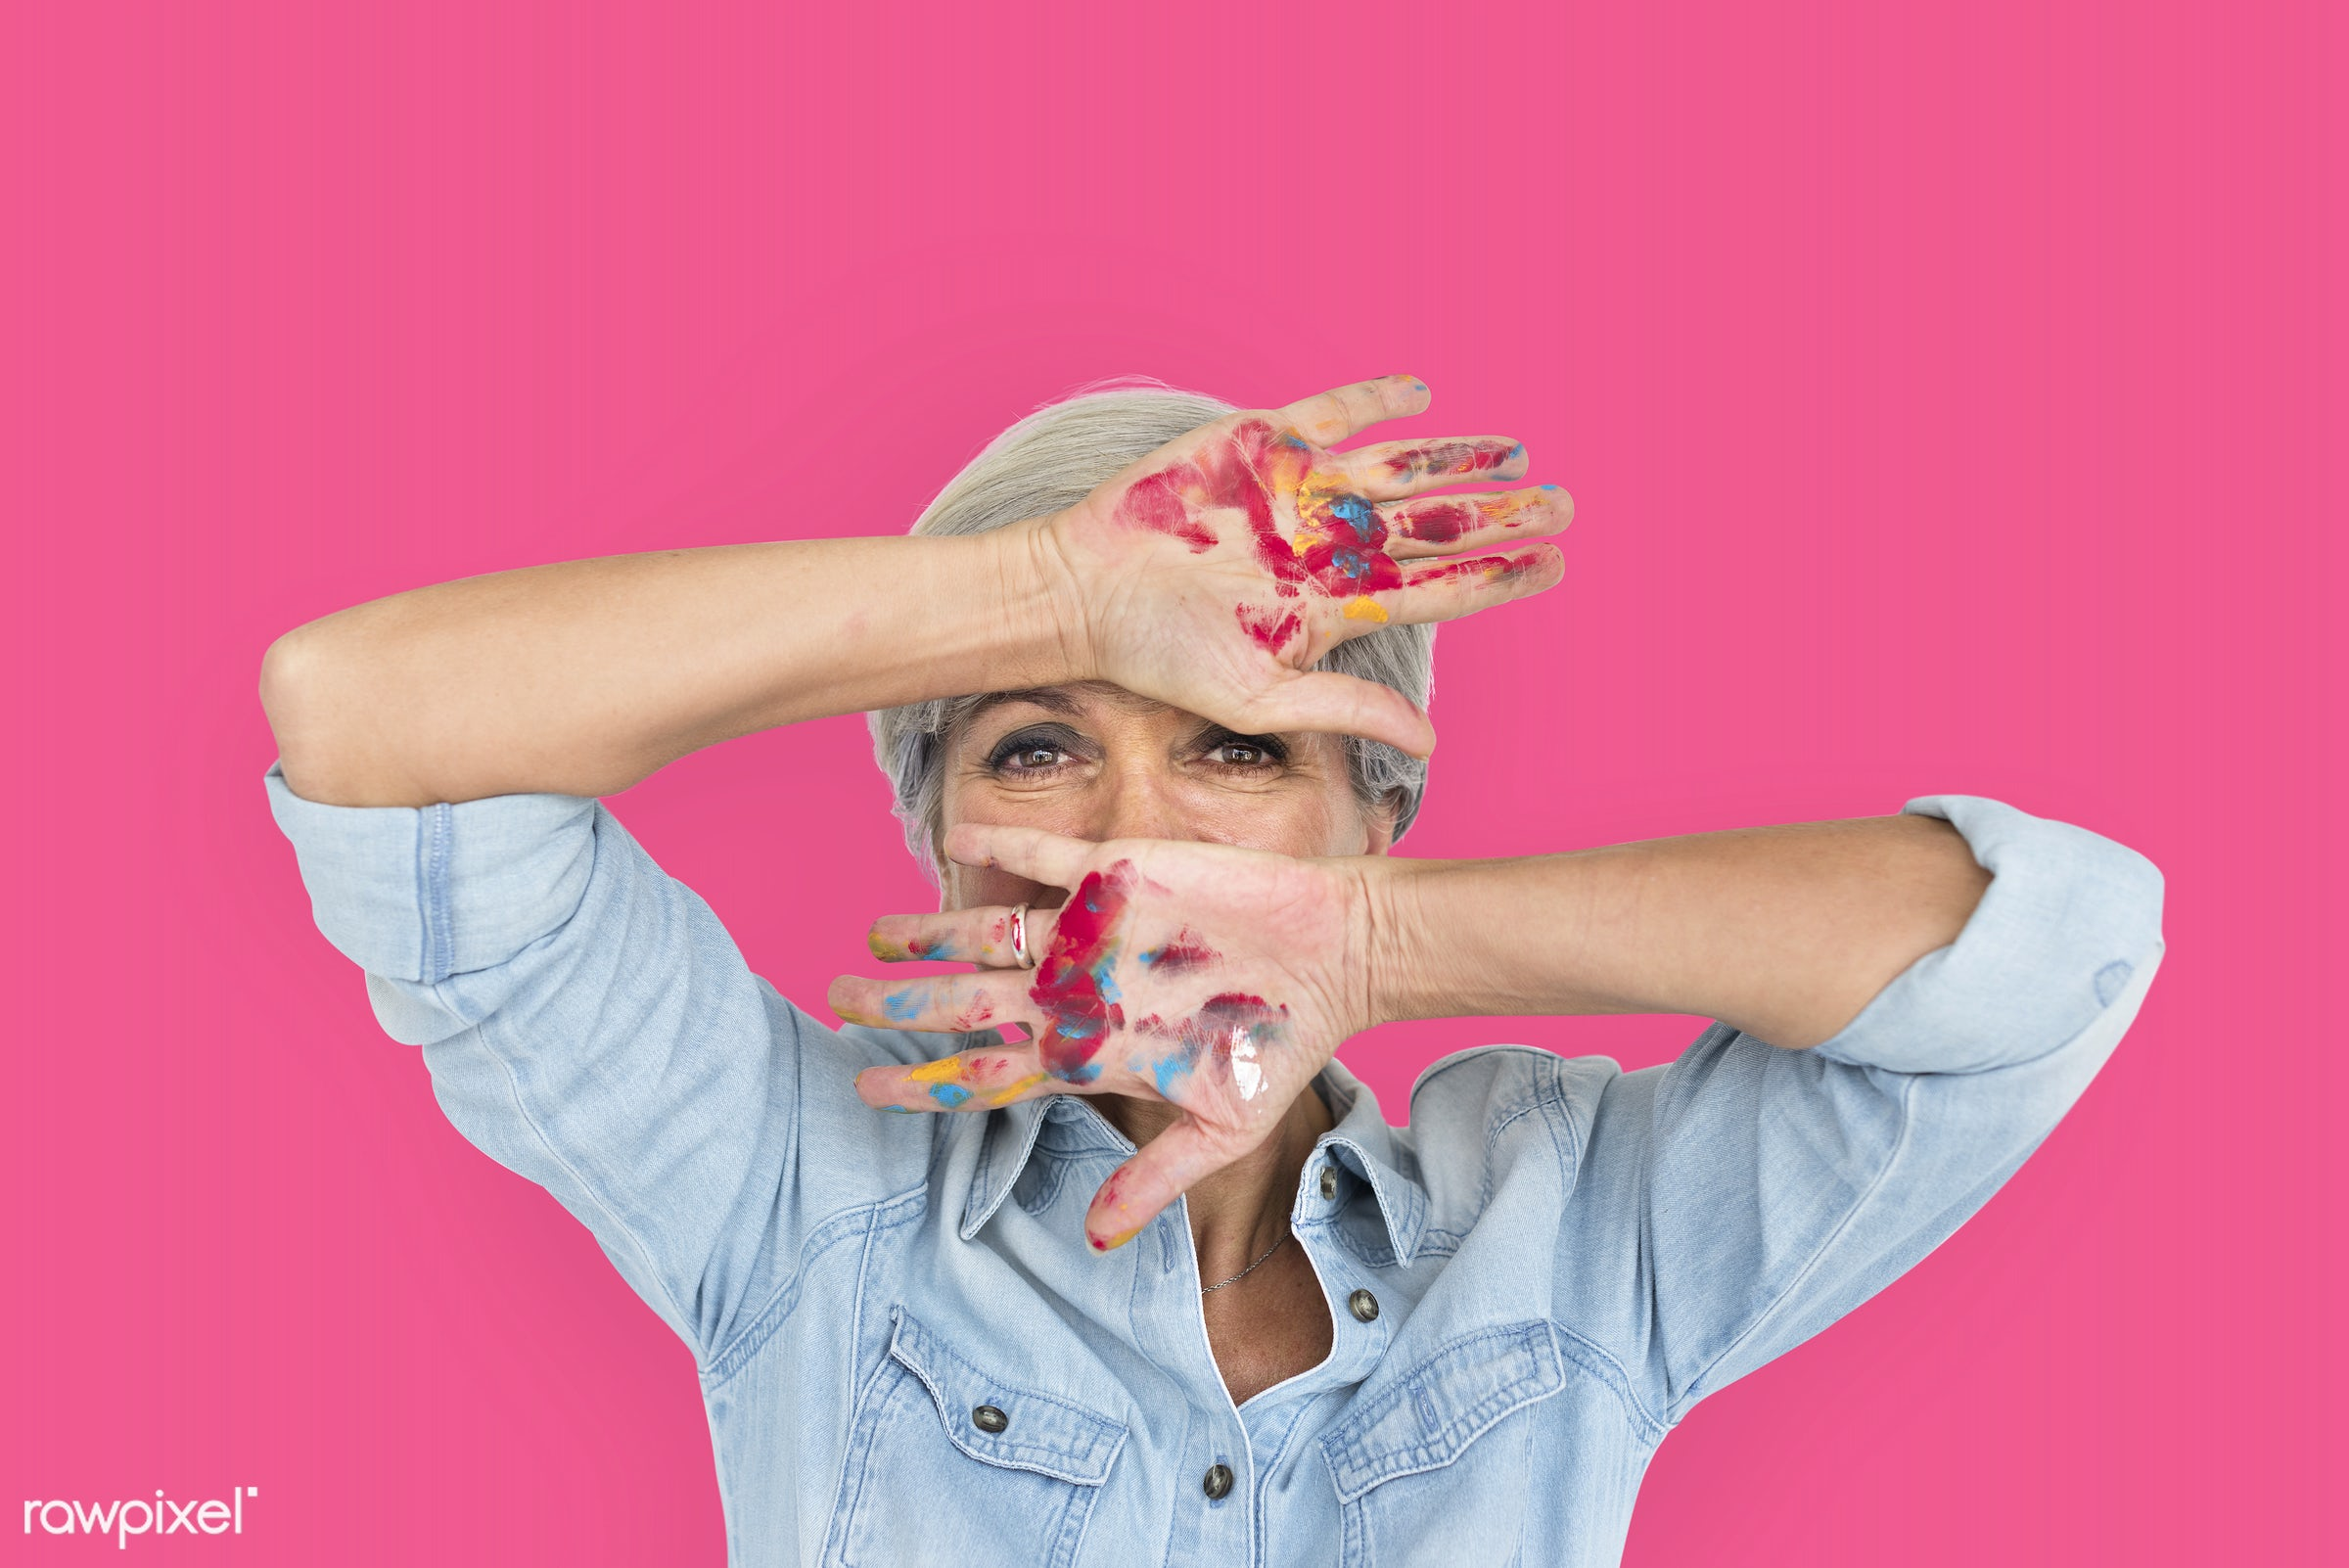 studio, expression, face, person, arts, cover mouth, beauty, cute, pretty, people, style, solo, woman, casual, pink,...